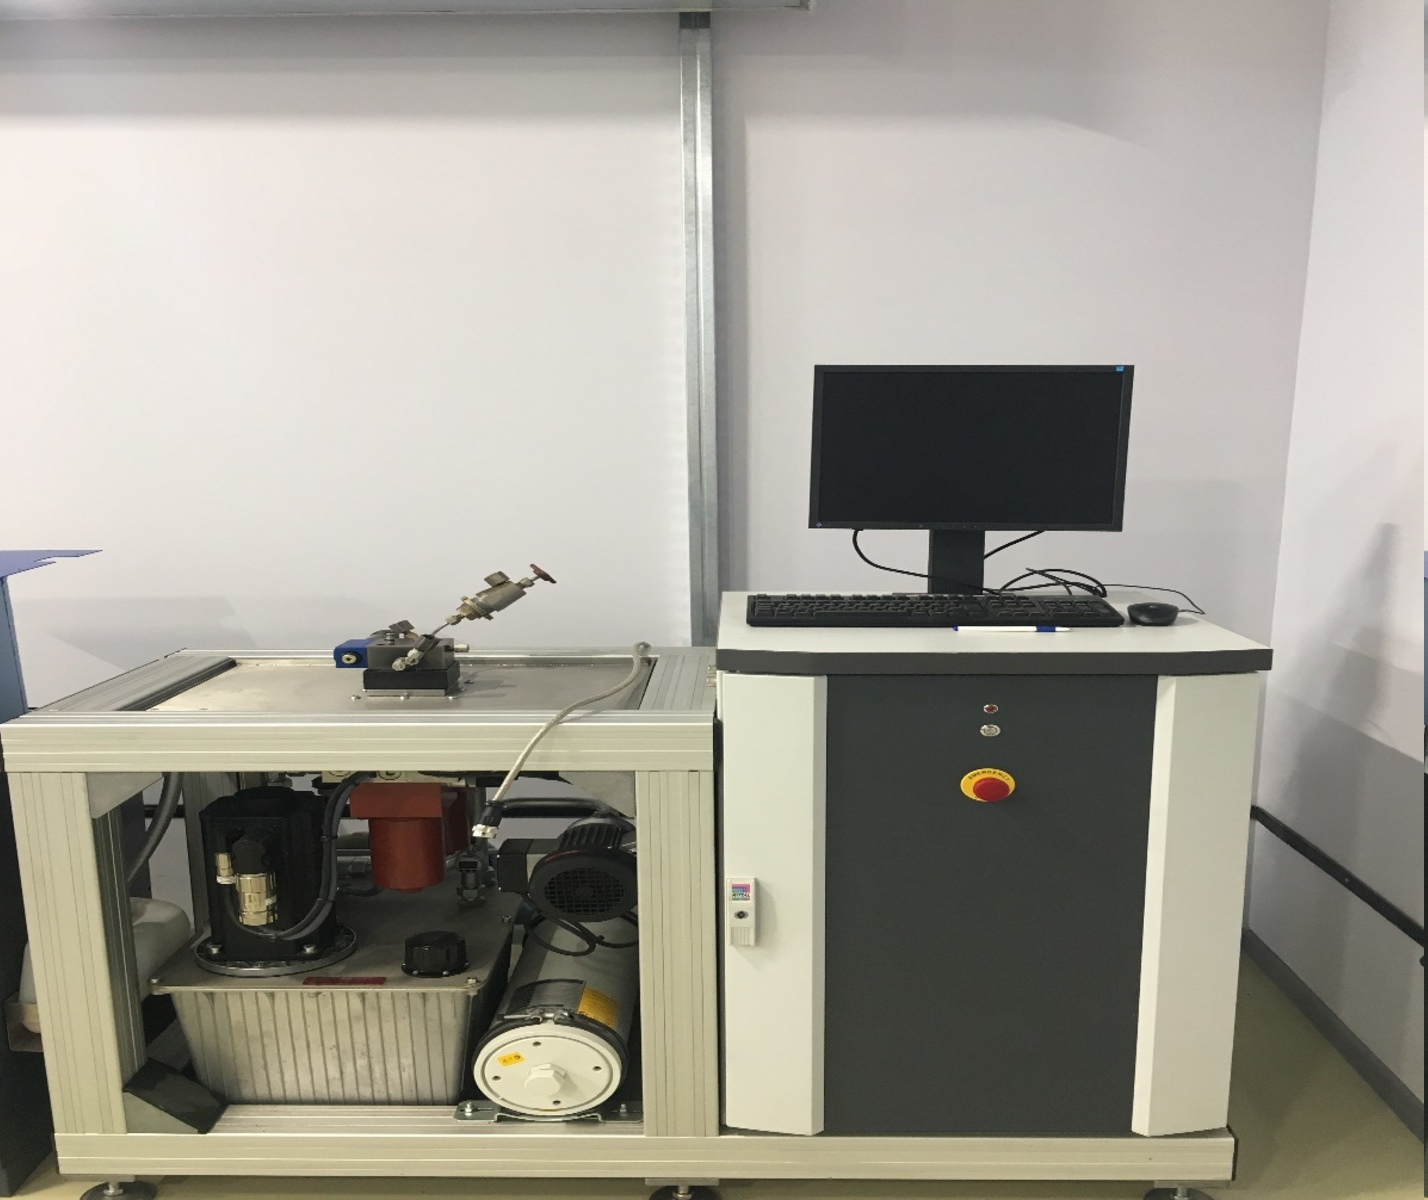 ValveExpert automatic test-bench for electrical amplifiers using FH51 hydraulic oil